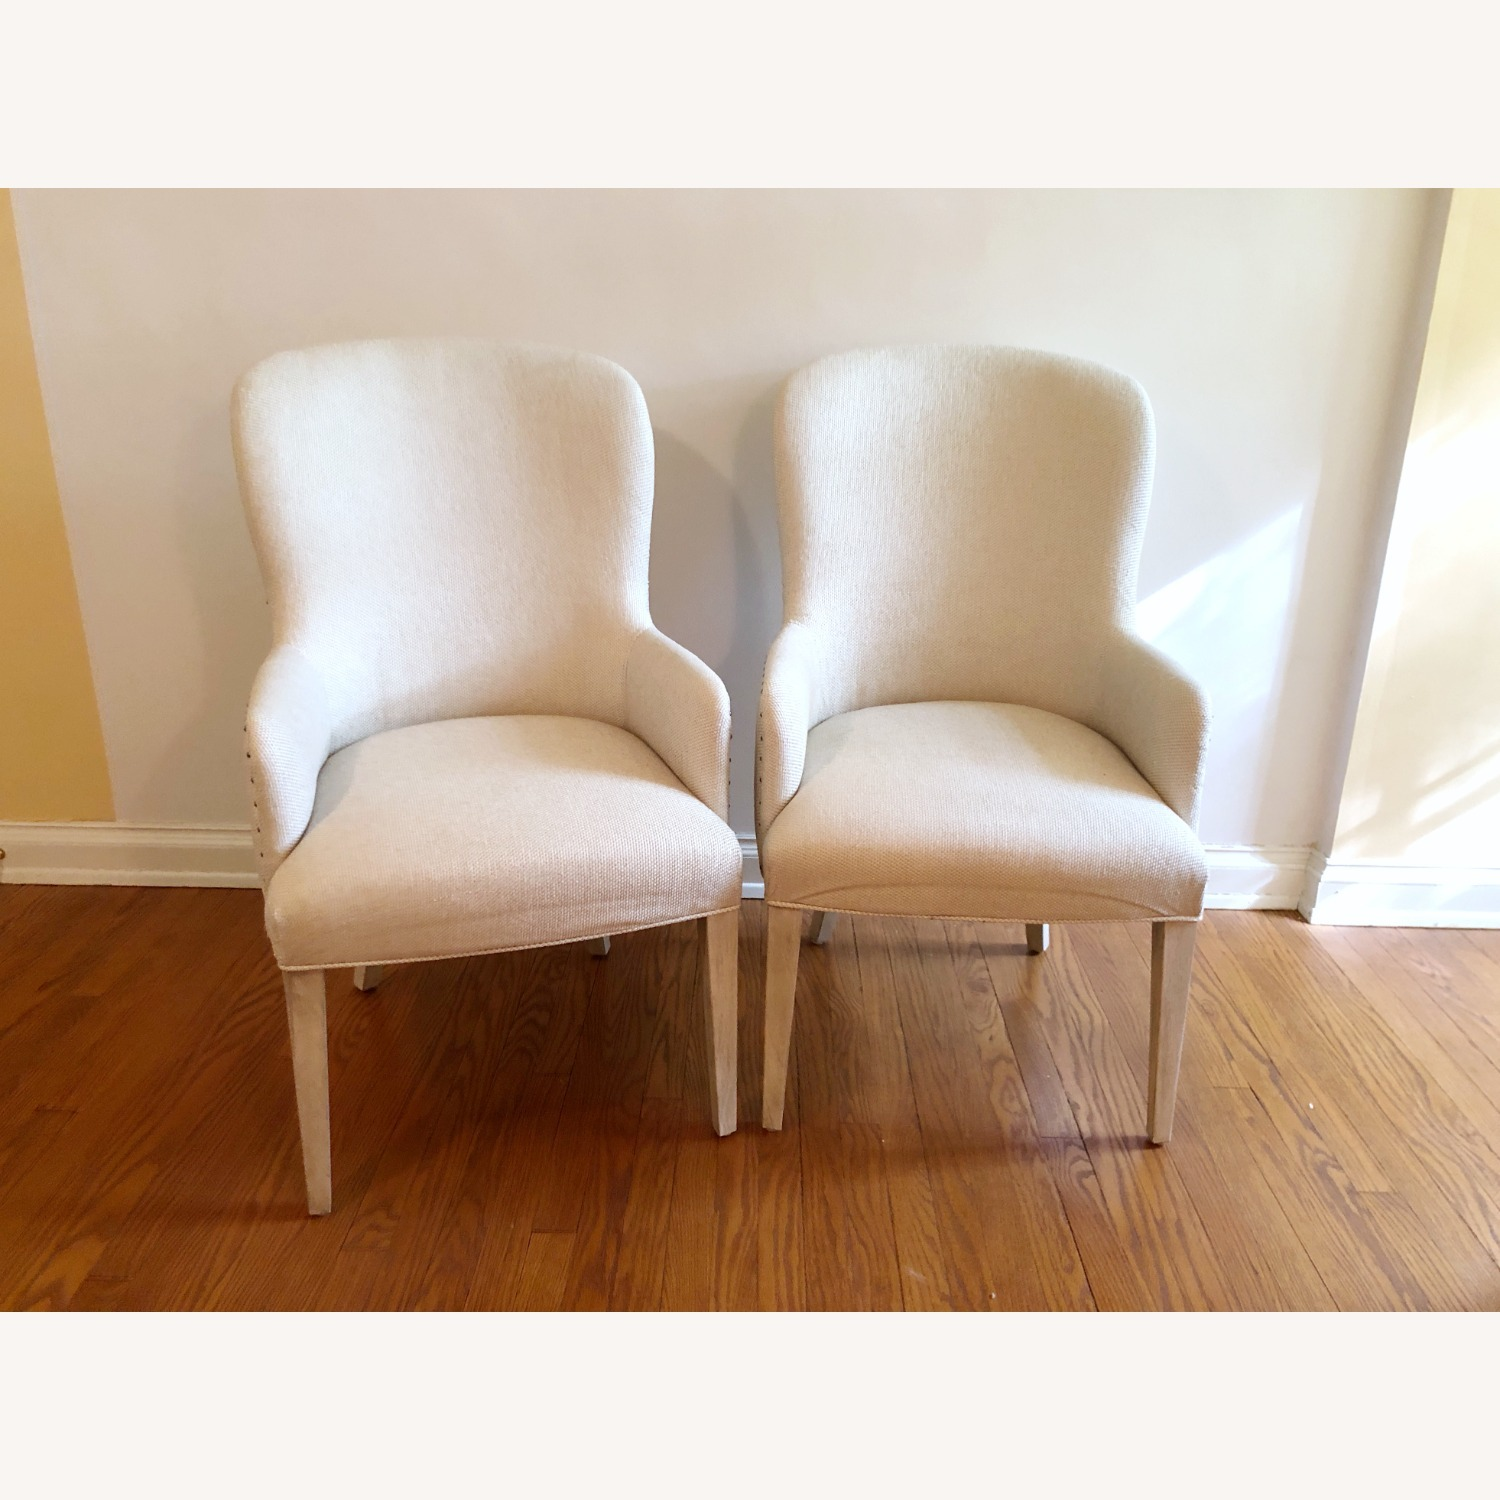 Oyster Bay Baxter Upholstered Arm Chair - image-5